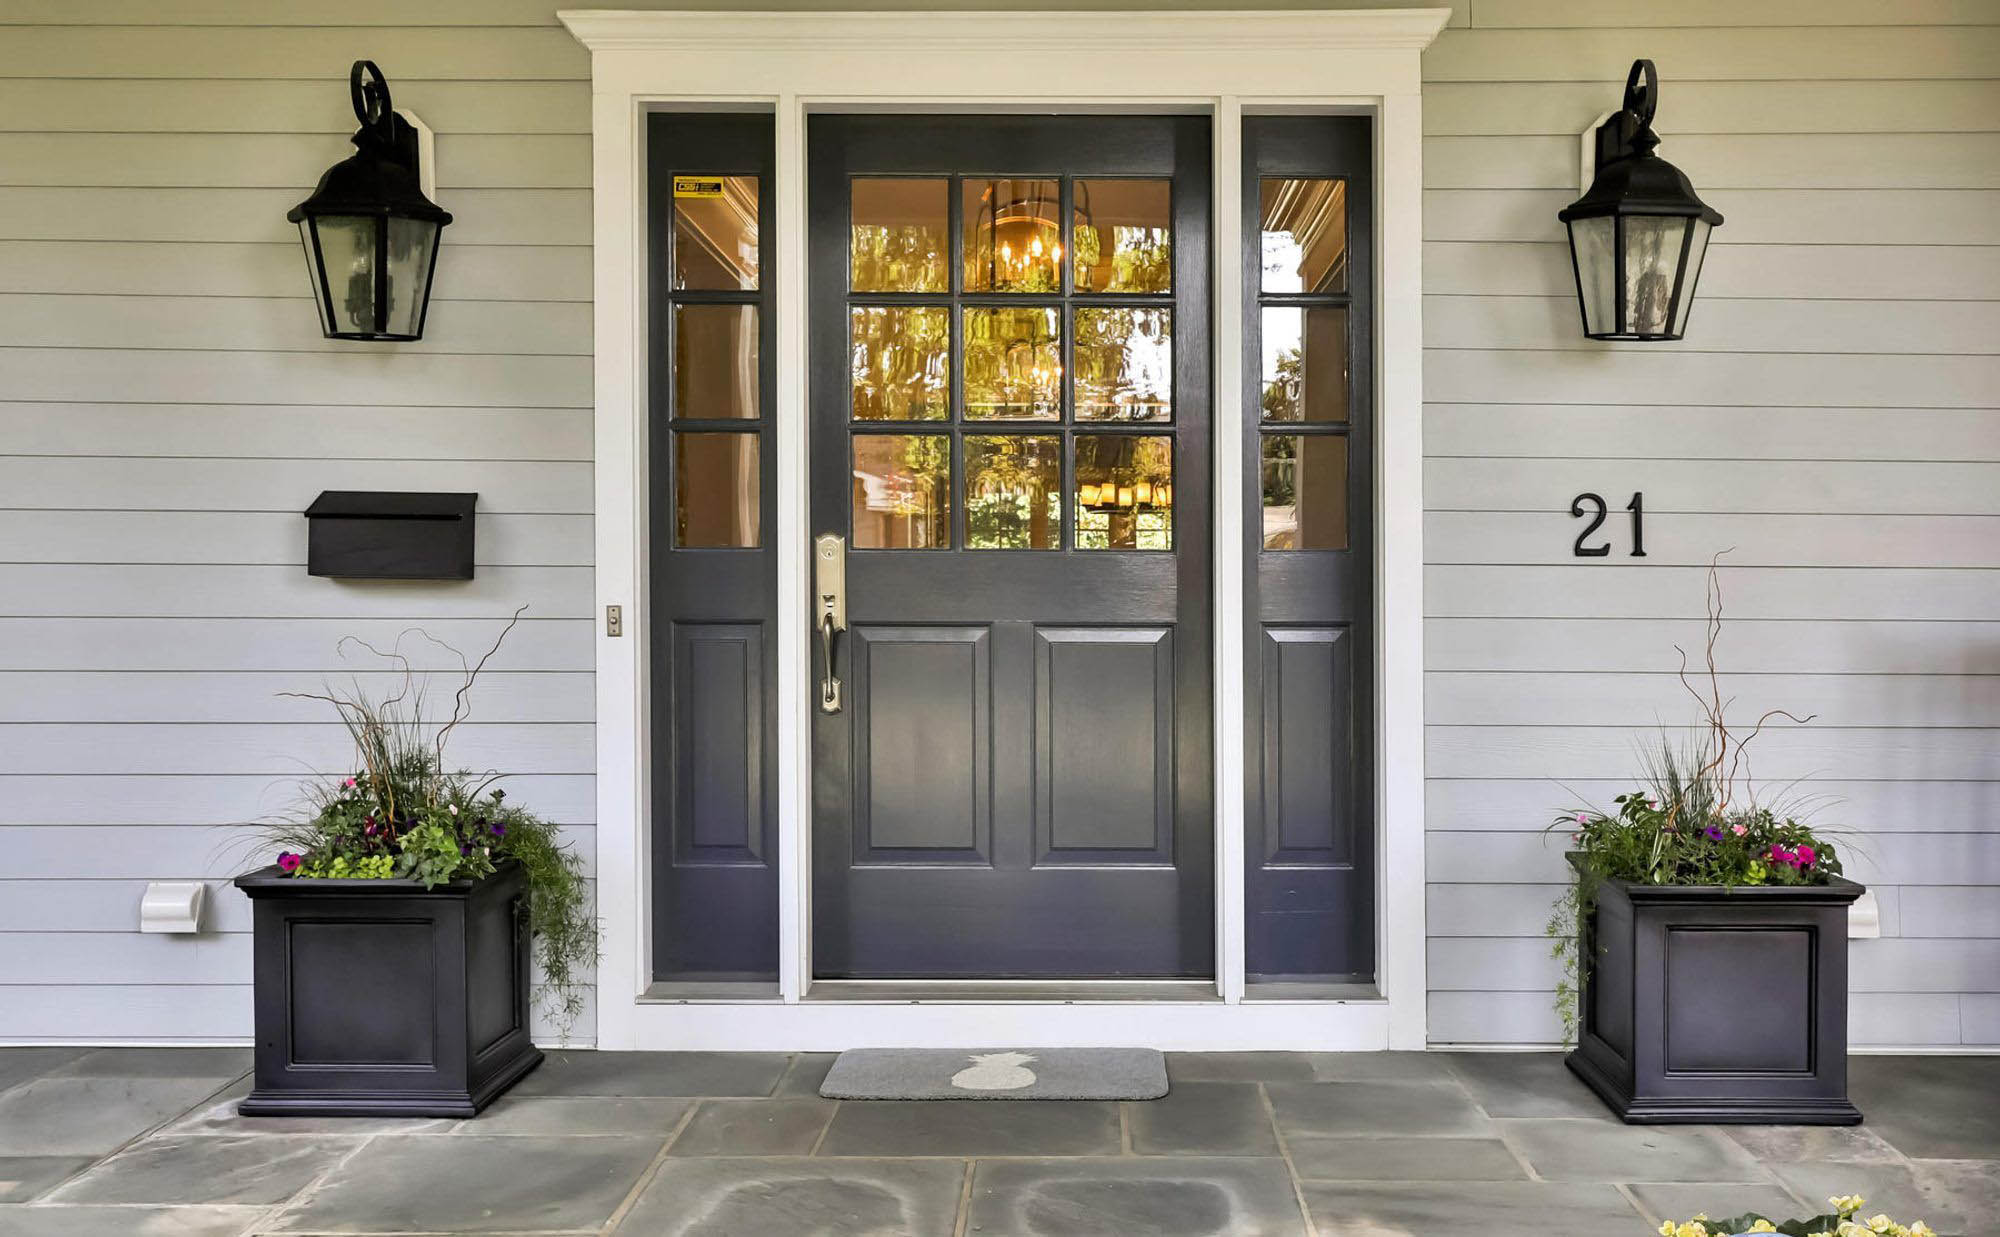 Black front door with matching flower planters, blue stone patio, sidelights, white trim.